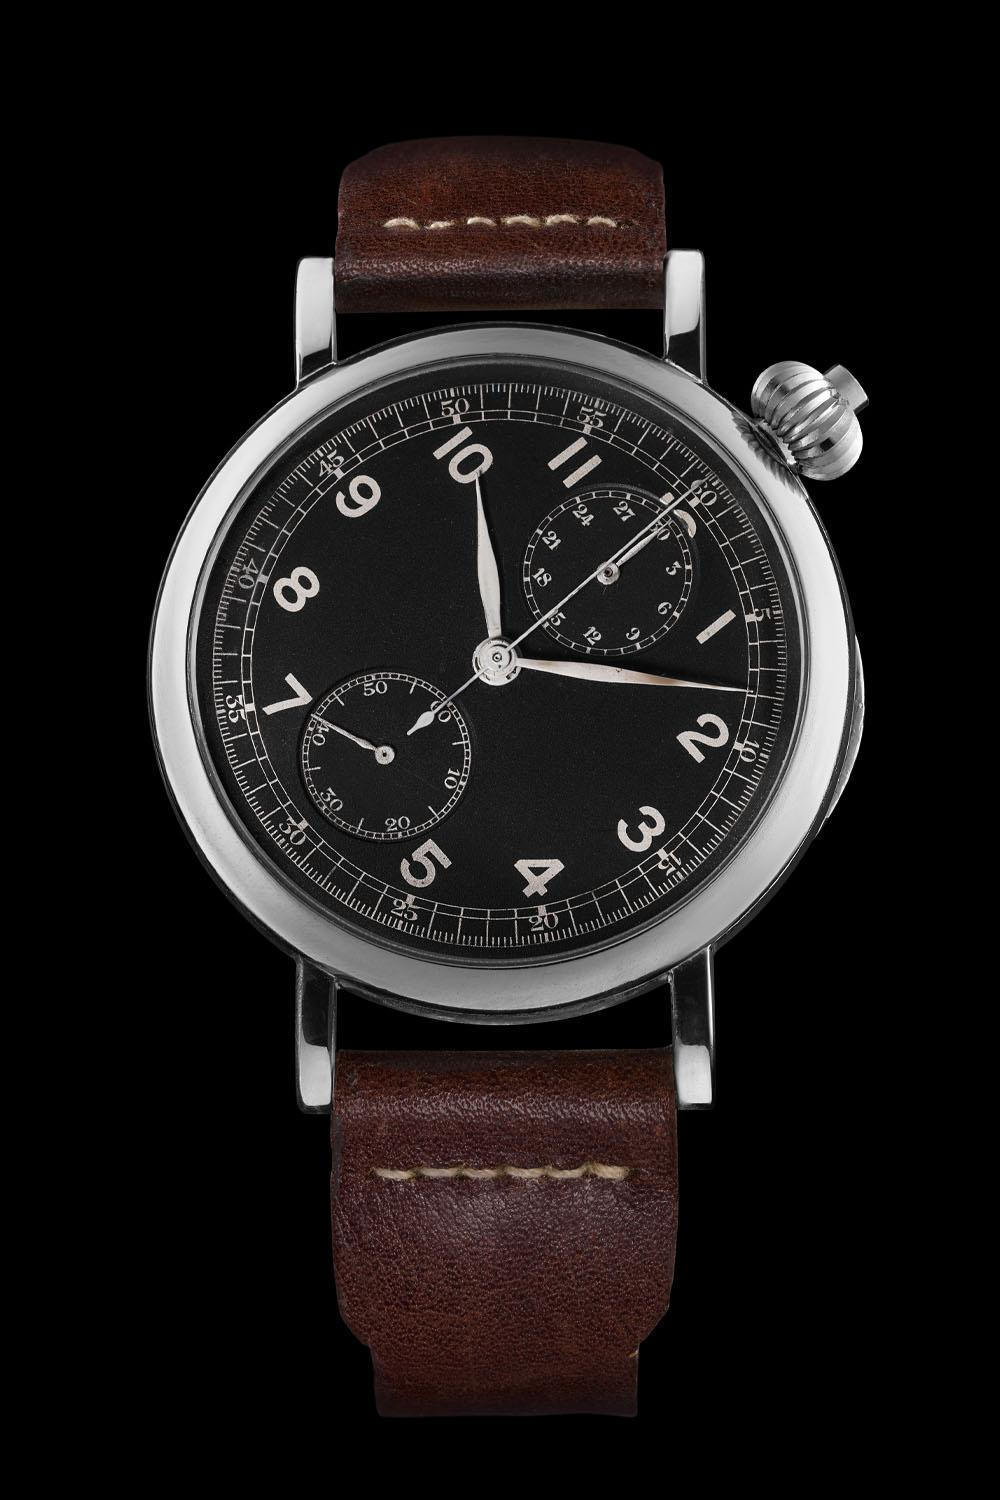 Longines Avigation Type A-7 1935 - reinviat in 2020